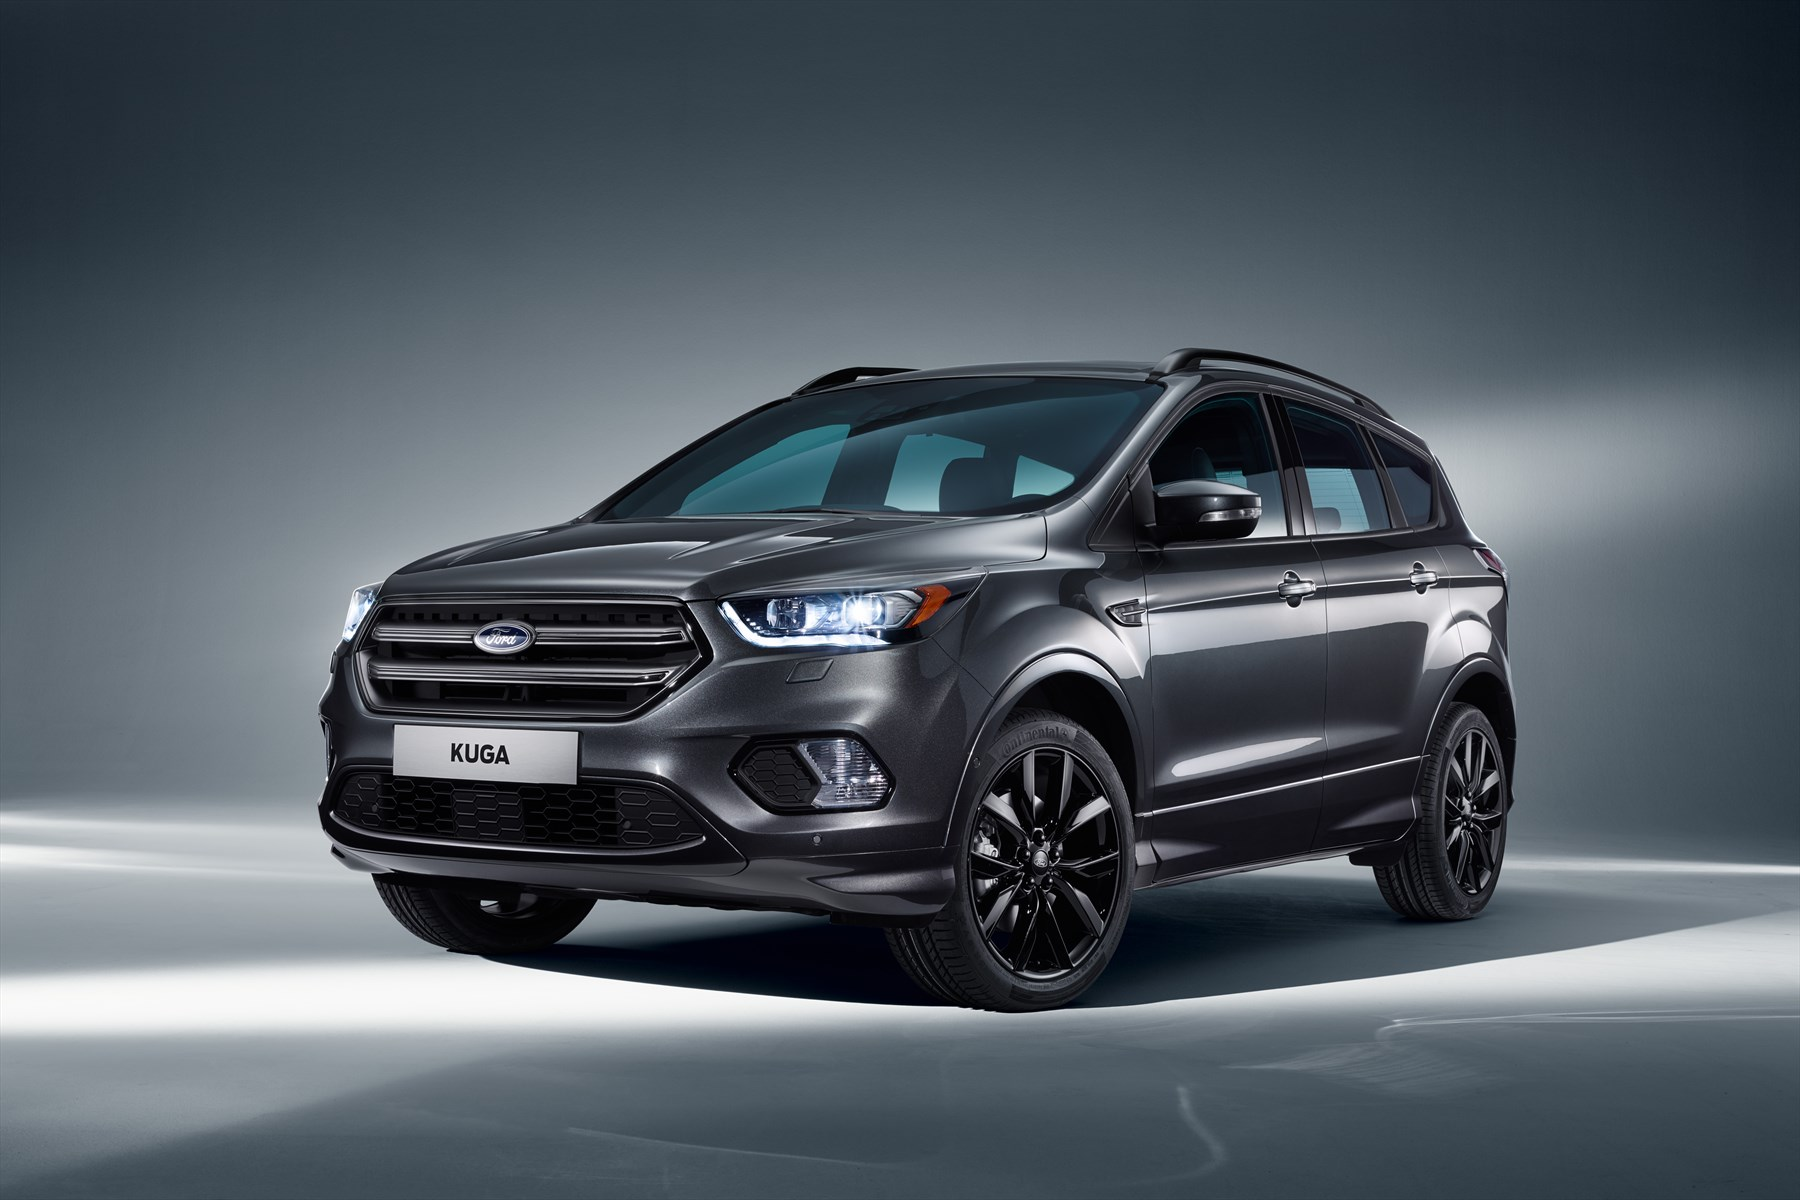 kuga_mca_sport_final_highres_01_1800x1800